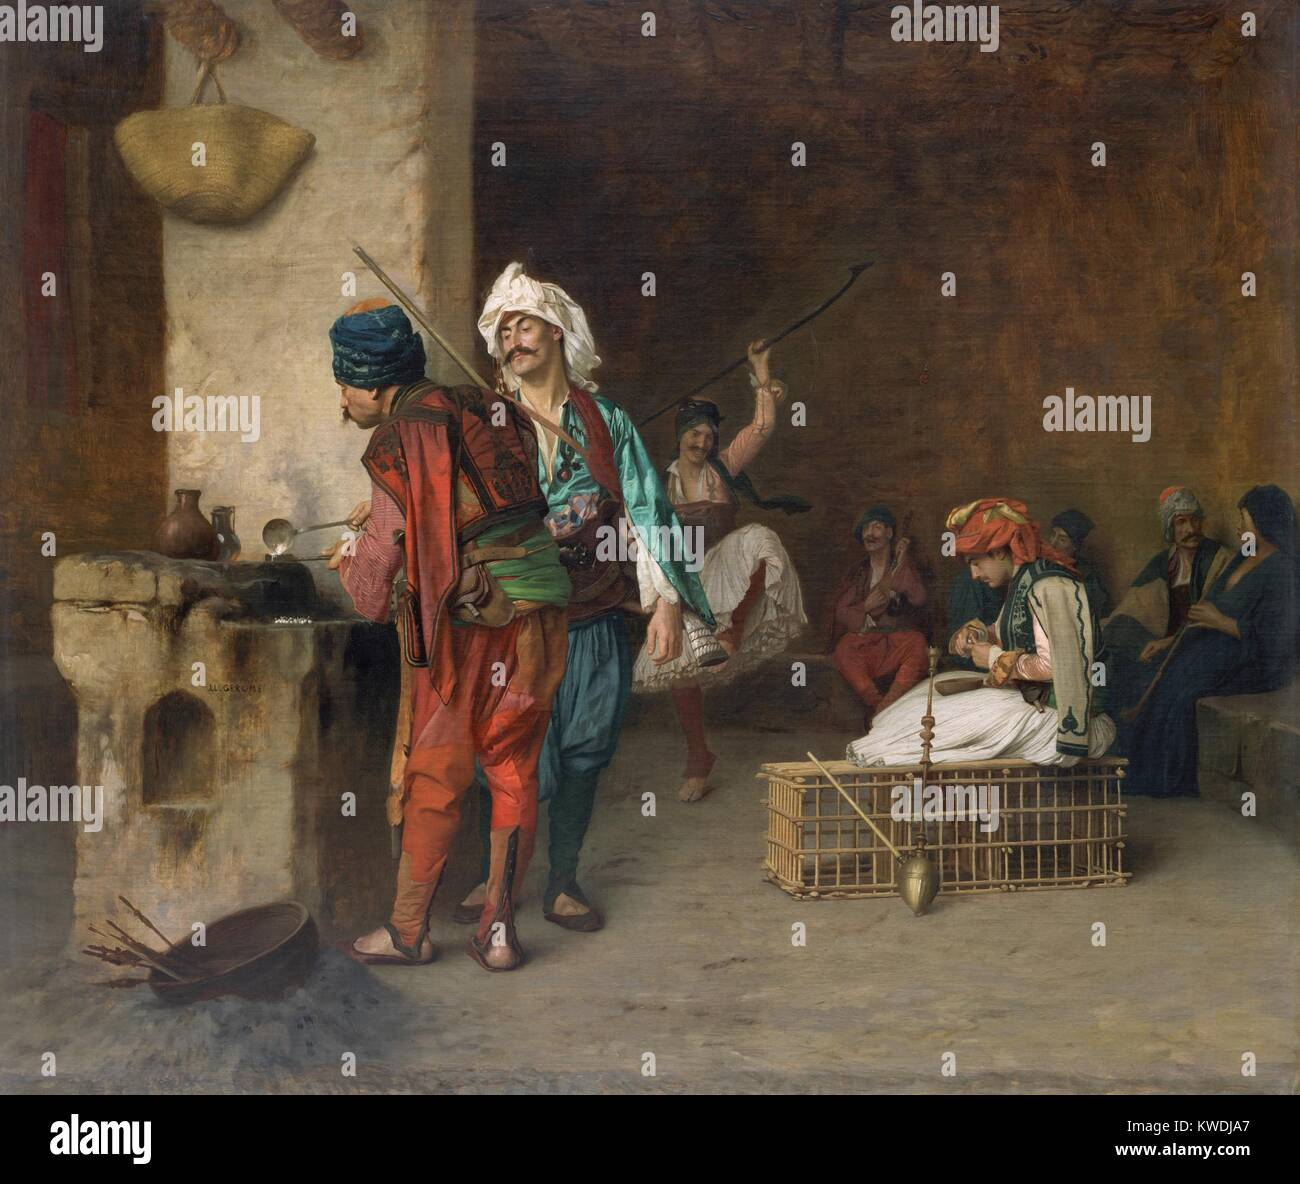 CAFÉ HOUSE, CAIRO, (CASTING BULLETS), by Jean-Leon Gerome, 1884, French painting, oil on canvas. Bashi-bazouks, Stock Photo